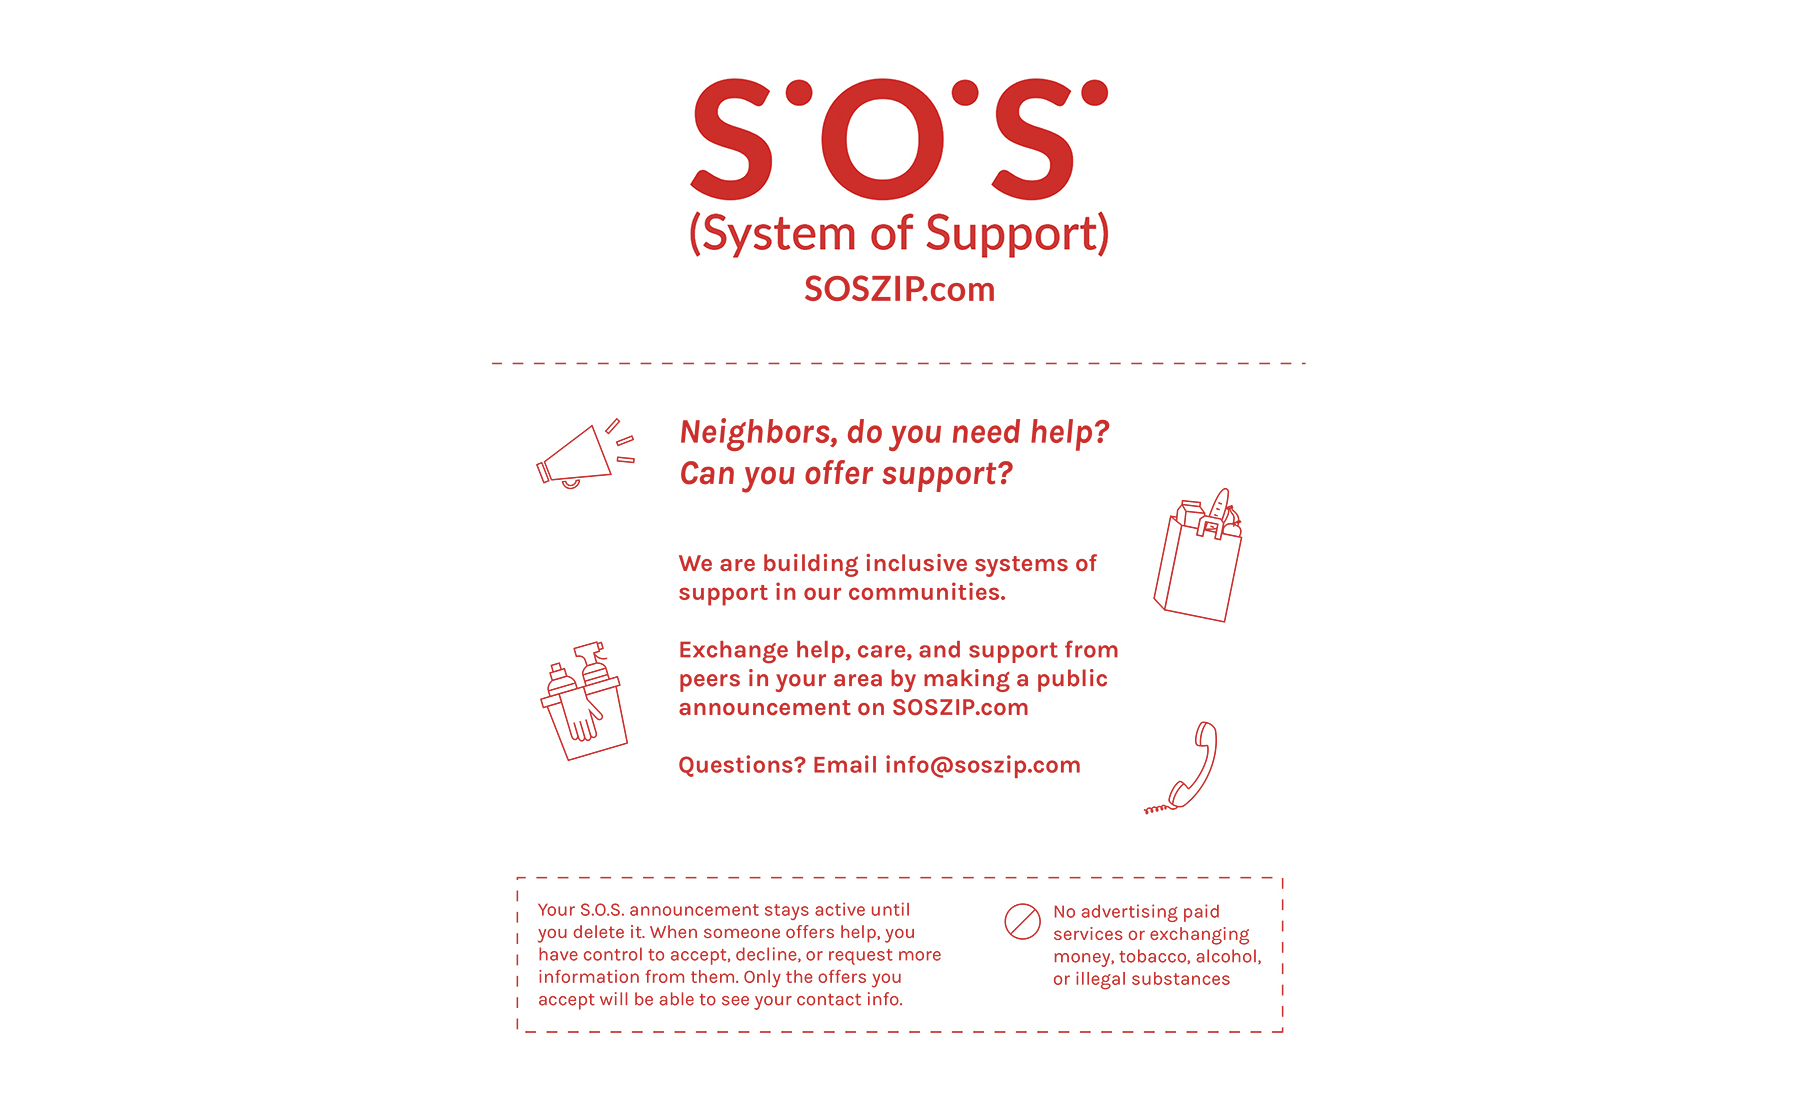 Jody Wood, S.O.S. (System of Support), 2020